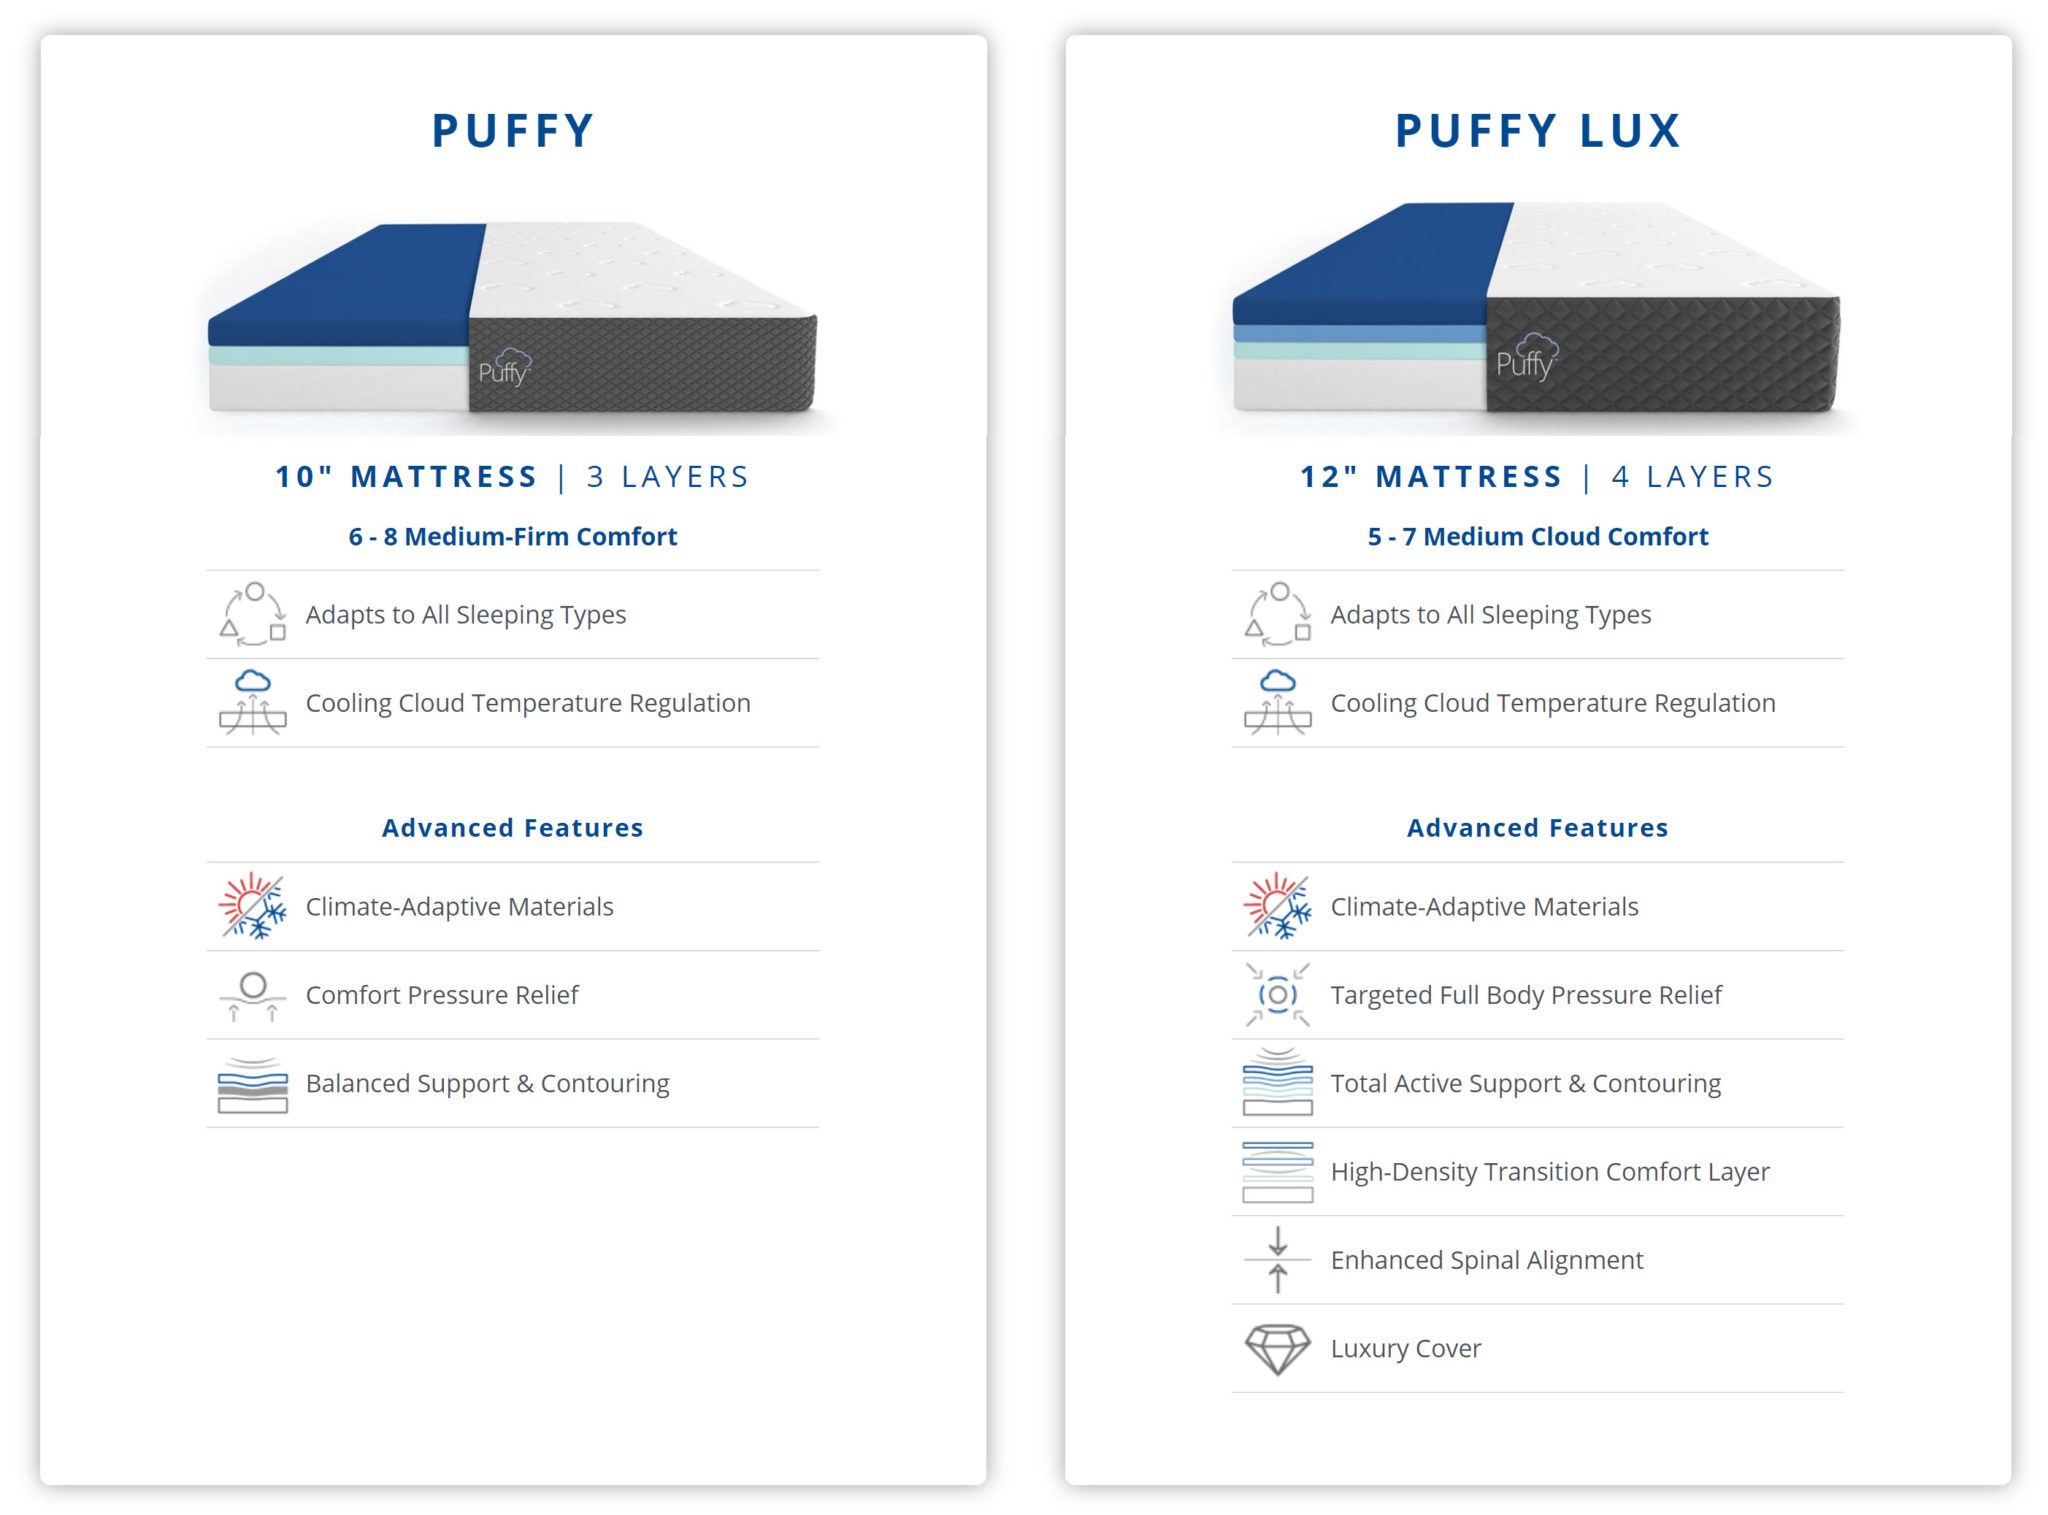 puffy vs puffy lux chart